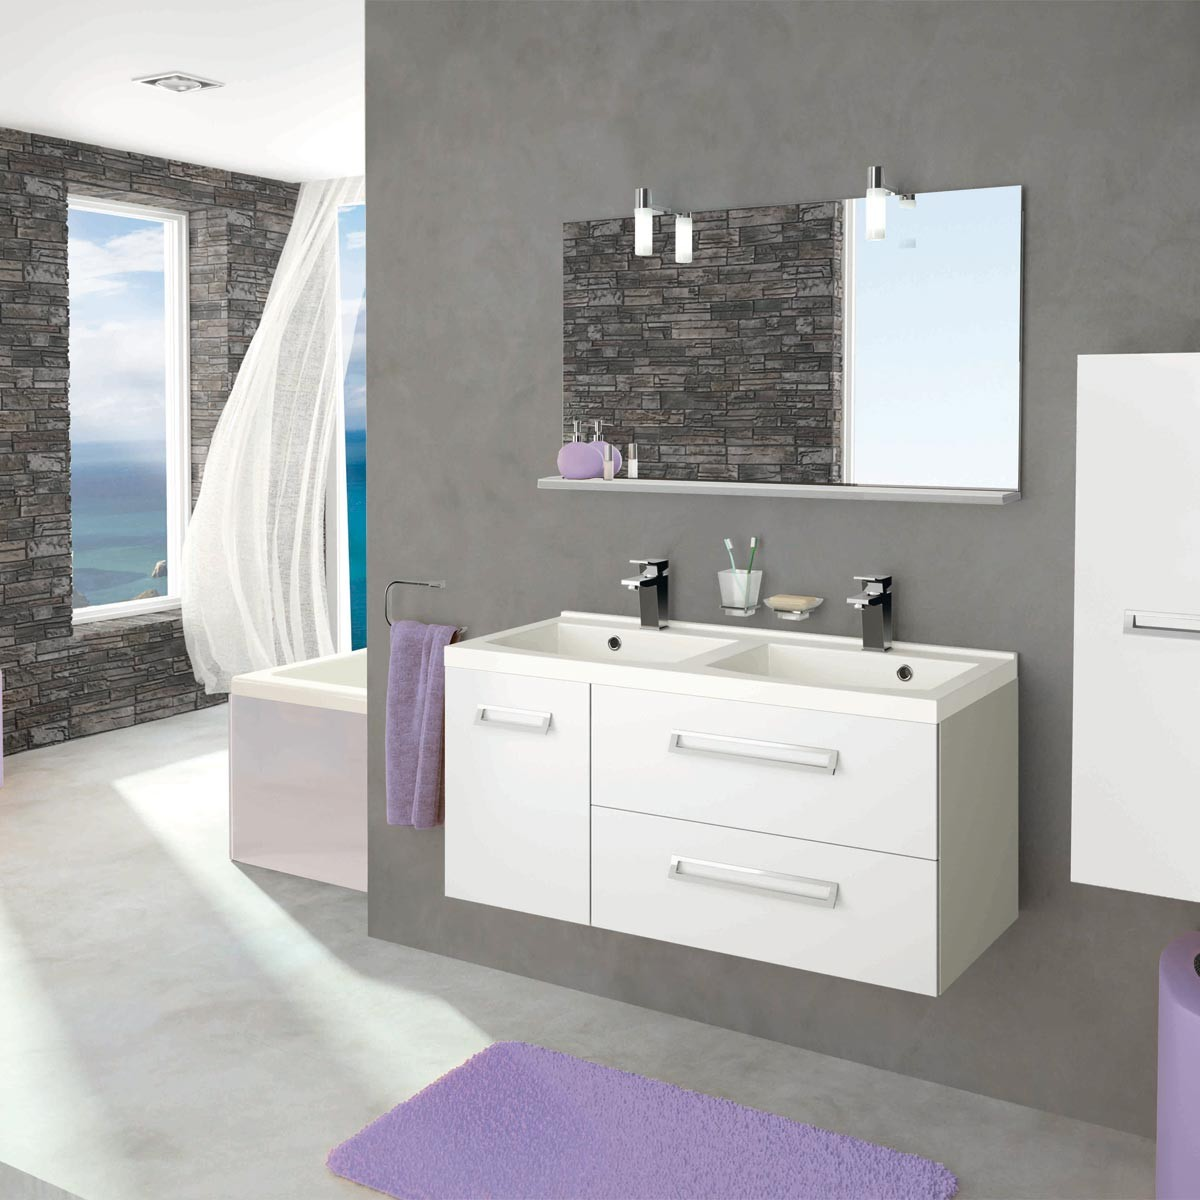 meuble salle de bain 40 cm de profondeur great meuble salle de bain unique pure delpha with. Black Bedroom Furniture Sets. Home Design Ideas